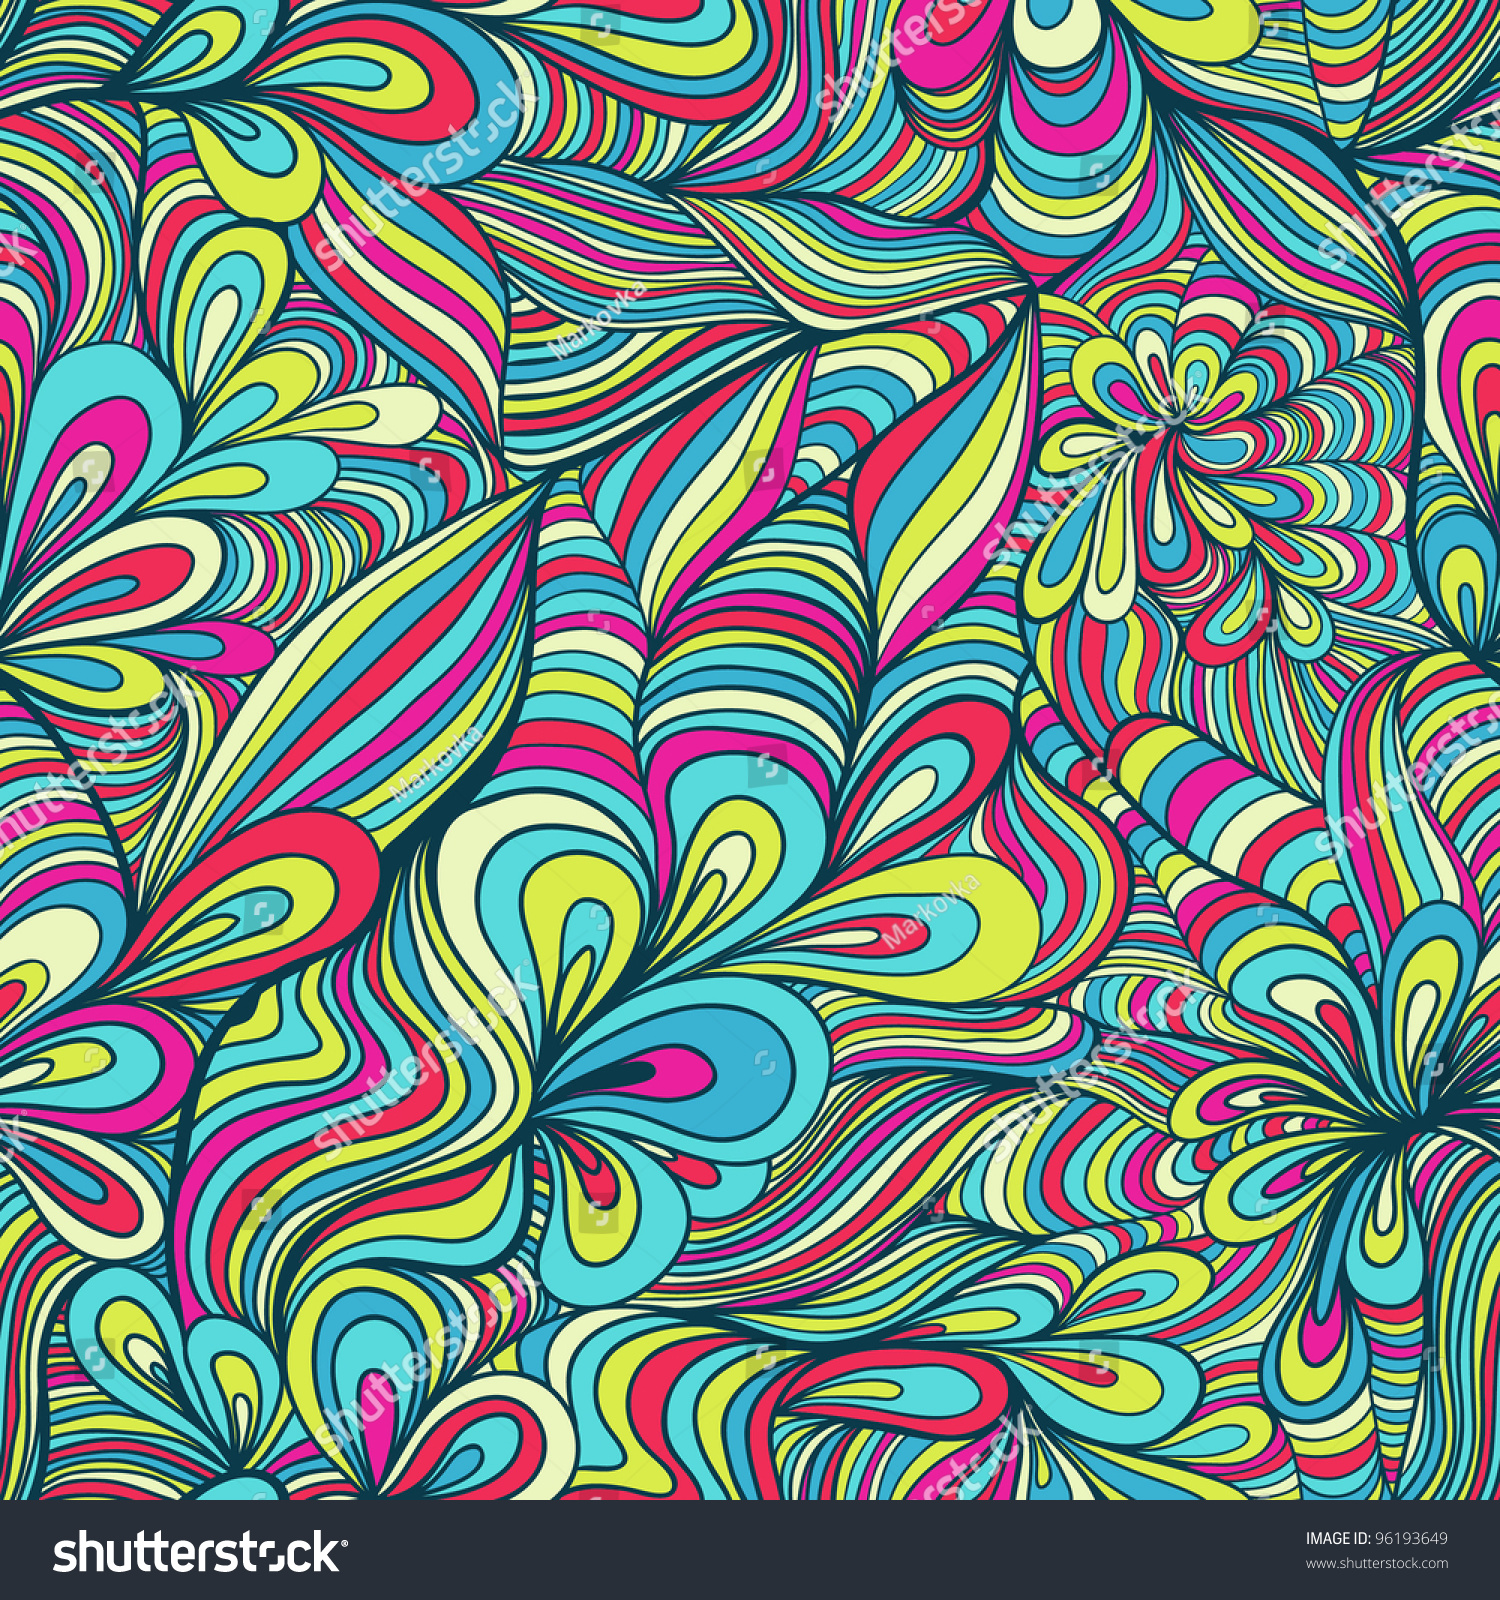 abstract funky pattern wallpaper - photo #28